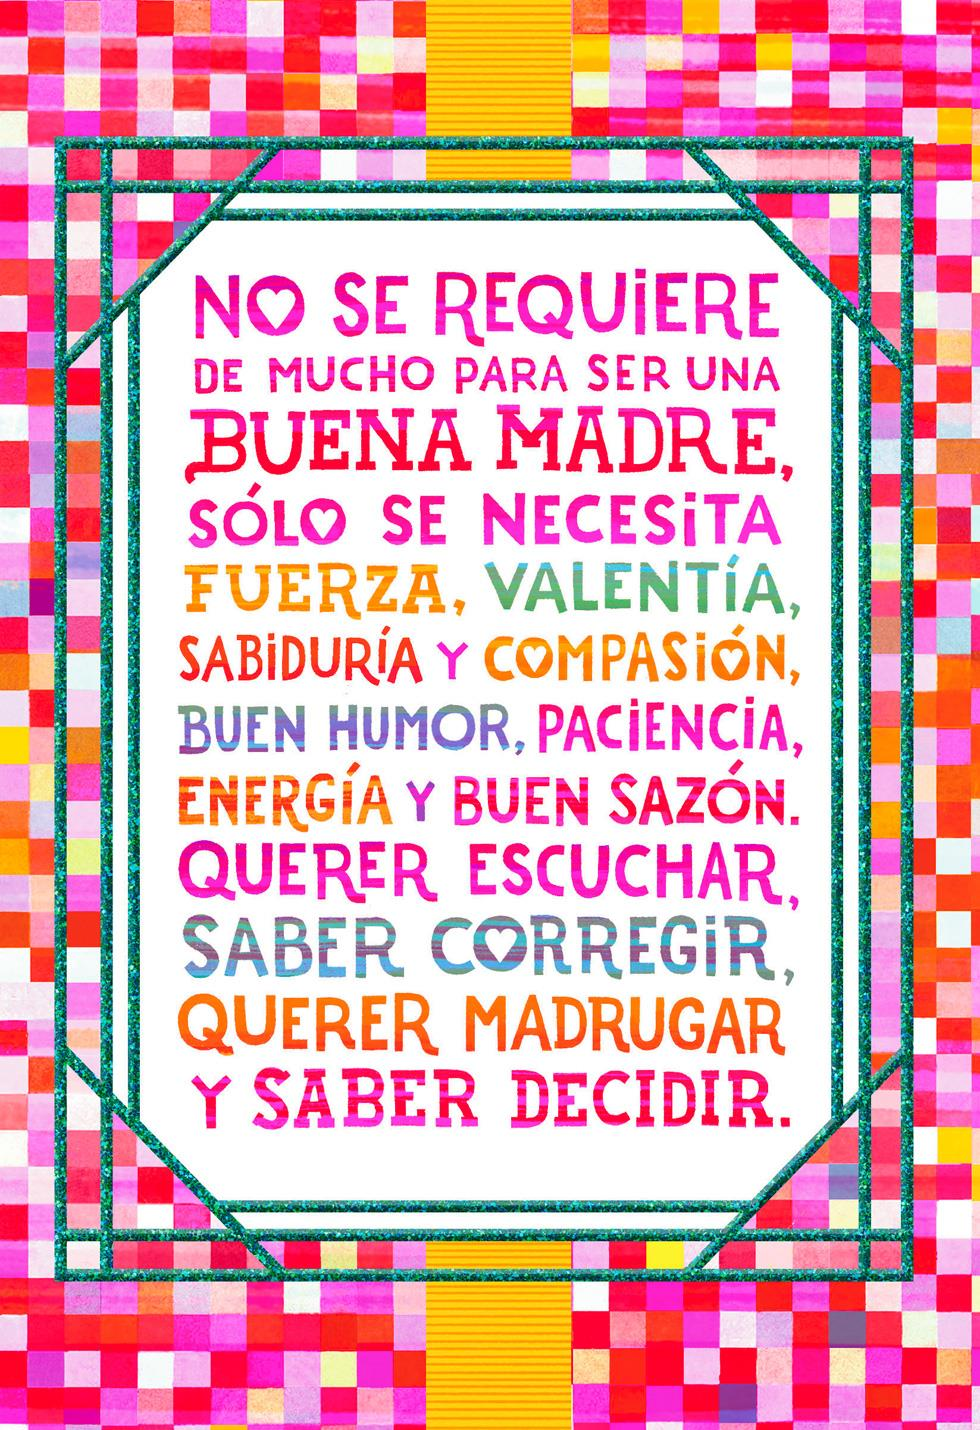 Colorful Squares Spanish Language Mothers Day Card For